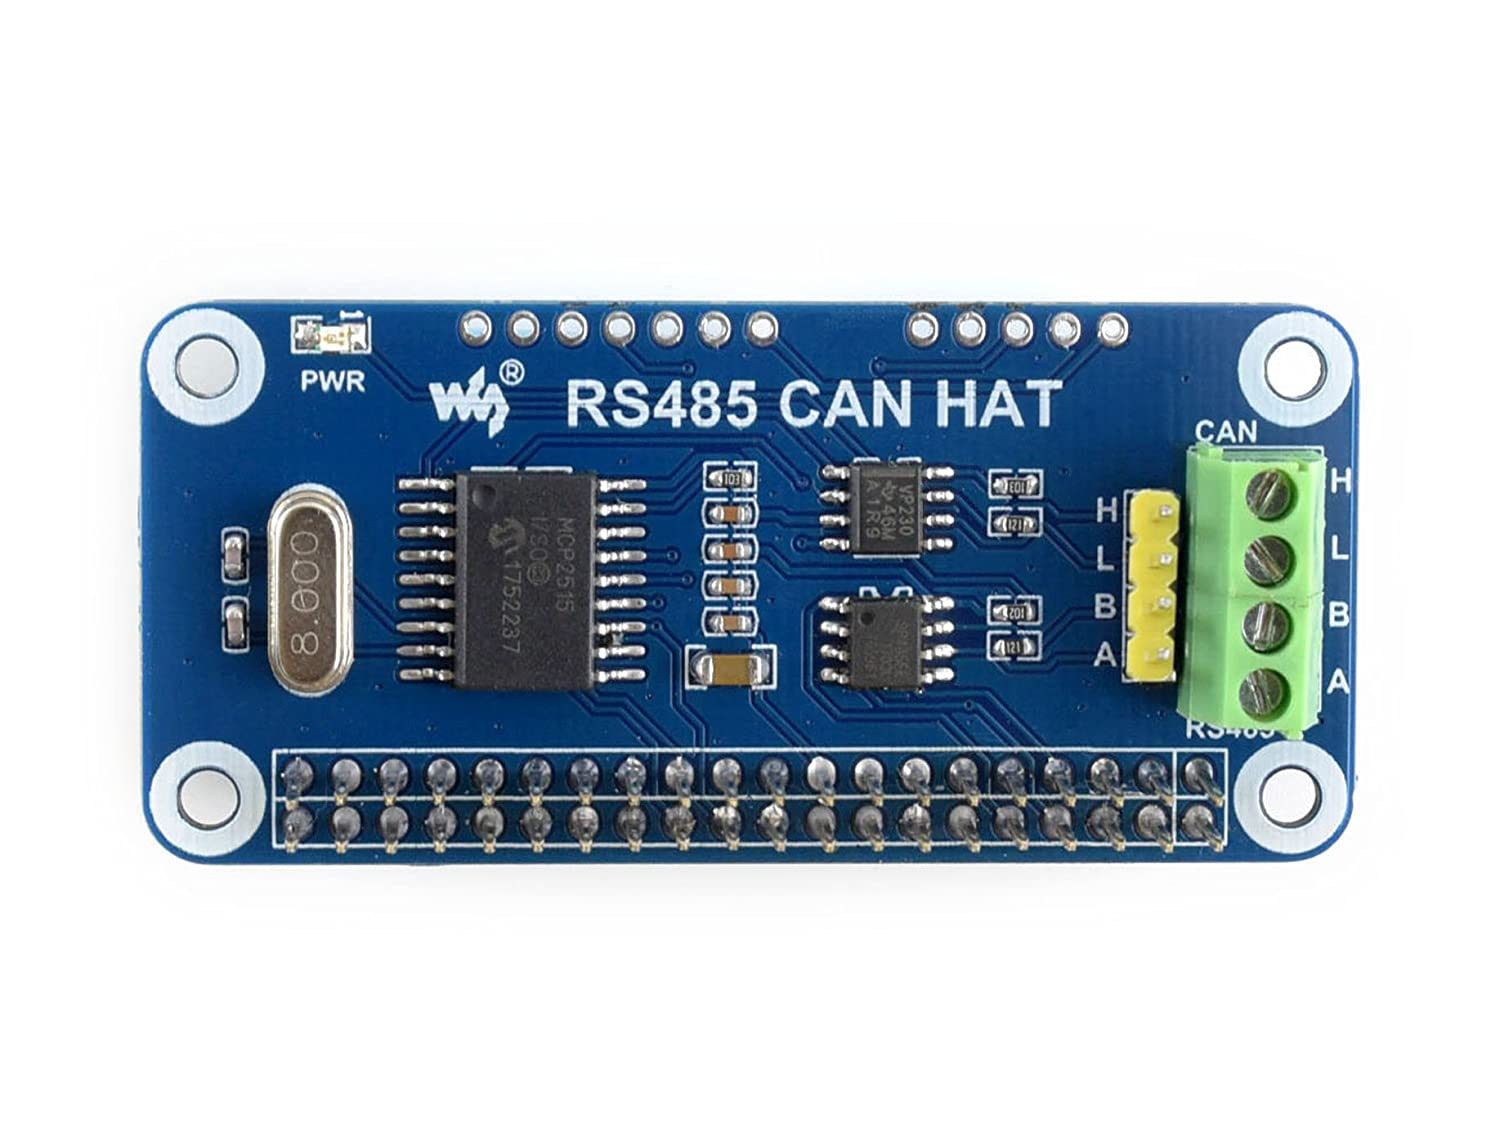 Waveshare Rs485 Can Hat Designed For Raspberry Pi Wiringpi I2c Lcd Allowing Stable Long Distance Communication Computers Accessories